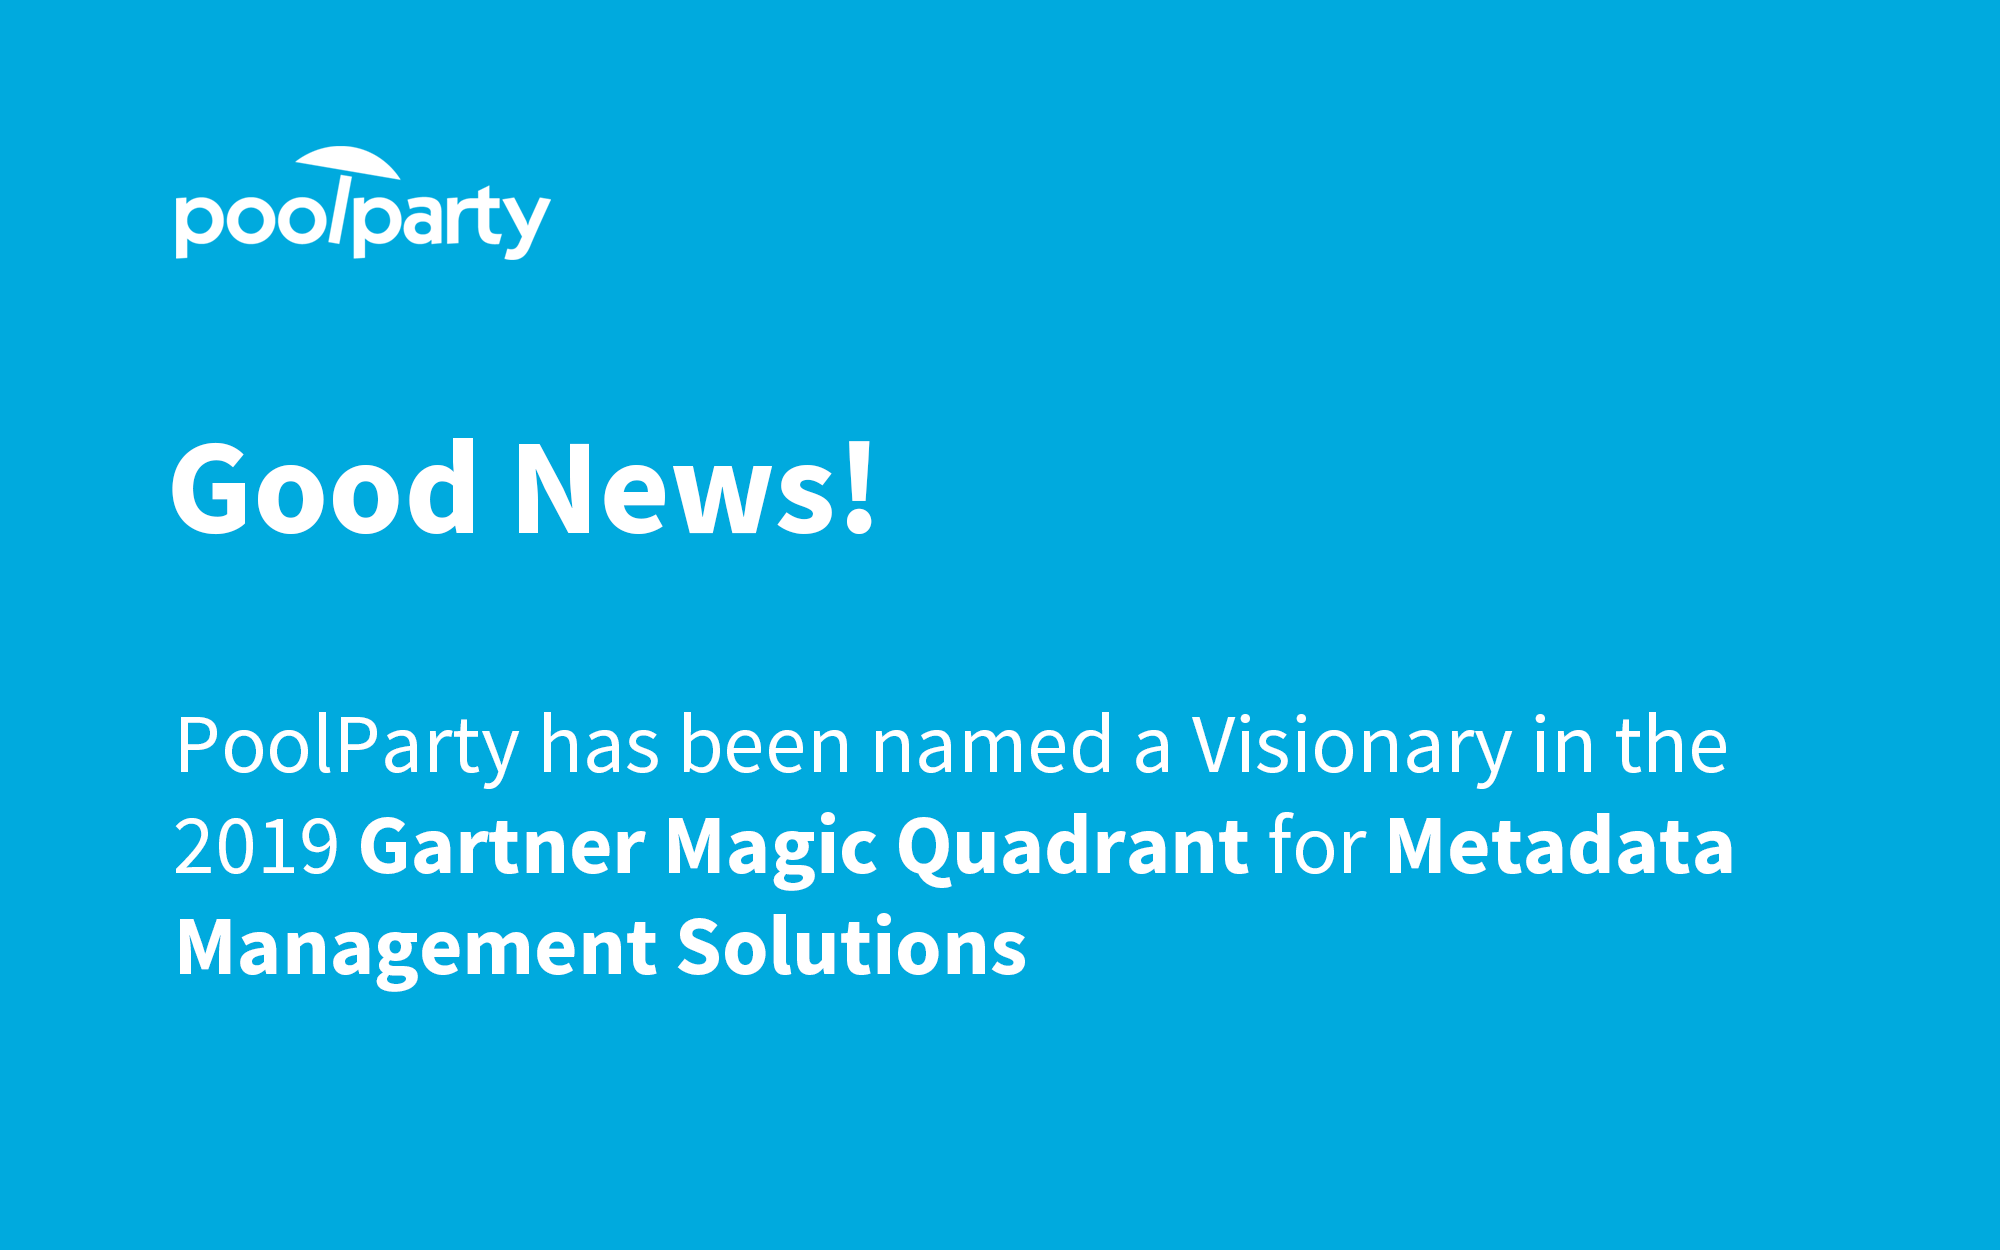 Gartner Names PoolParty as Visionary in 2019 Metadata Management Solutions Magic Quadrant